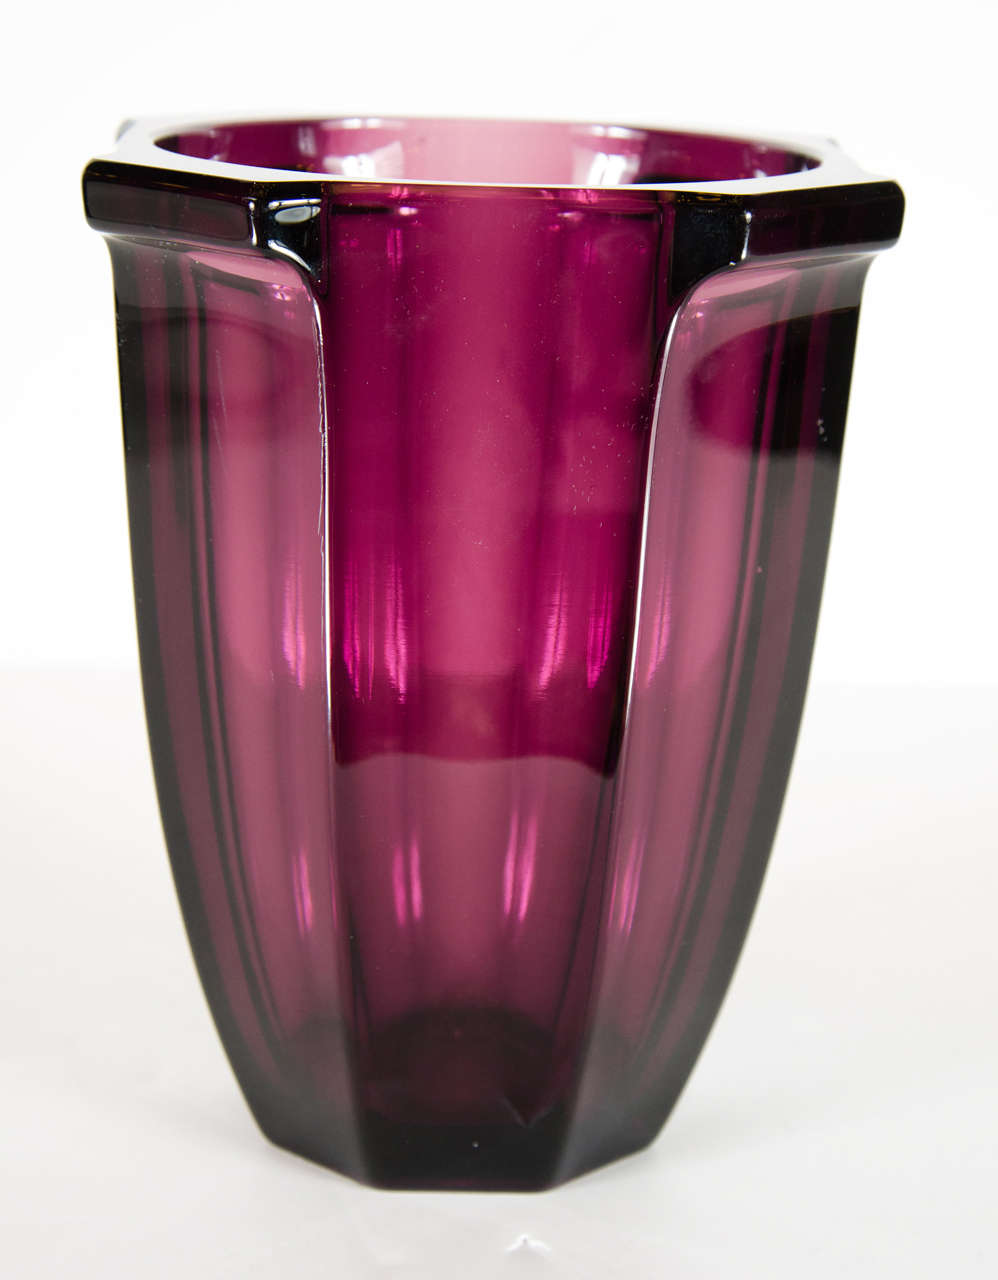 Exquisite art deco amethyst urn form glass vase at 1stdibs - Deco glace ...